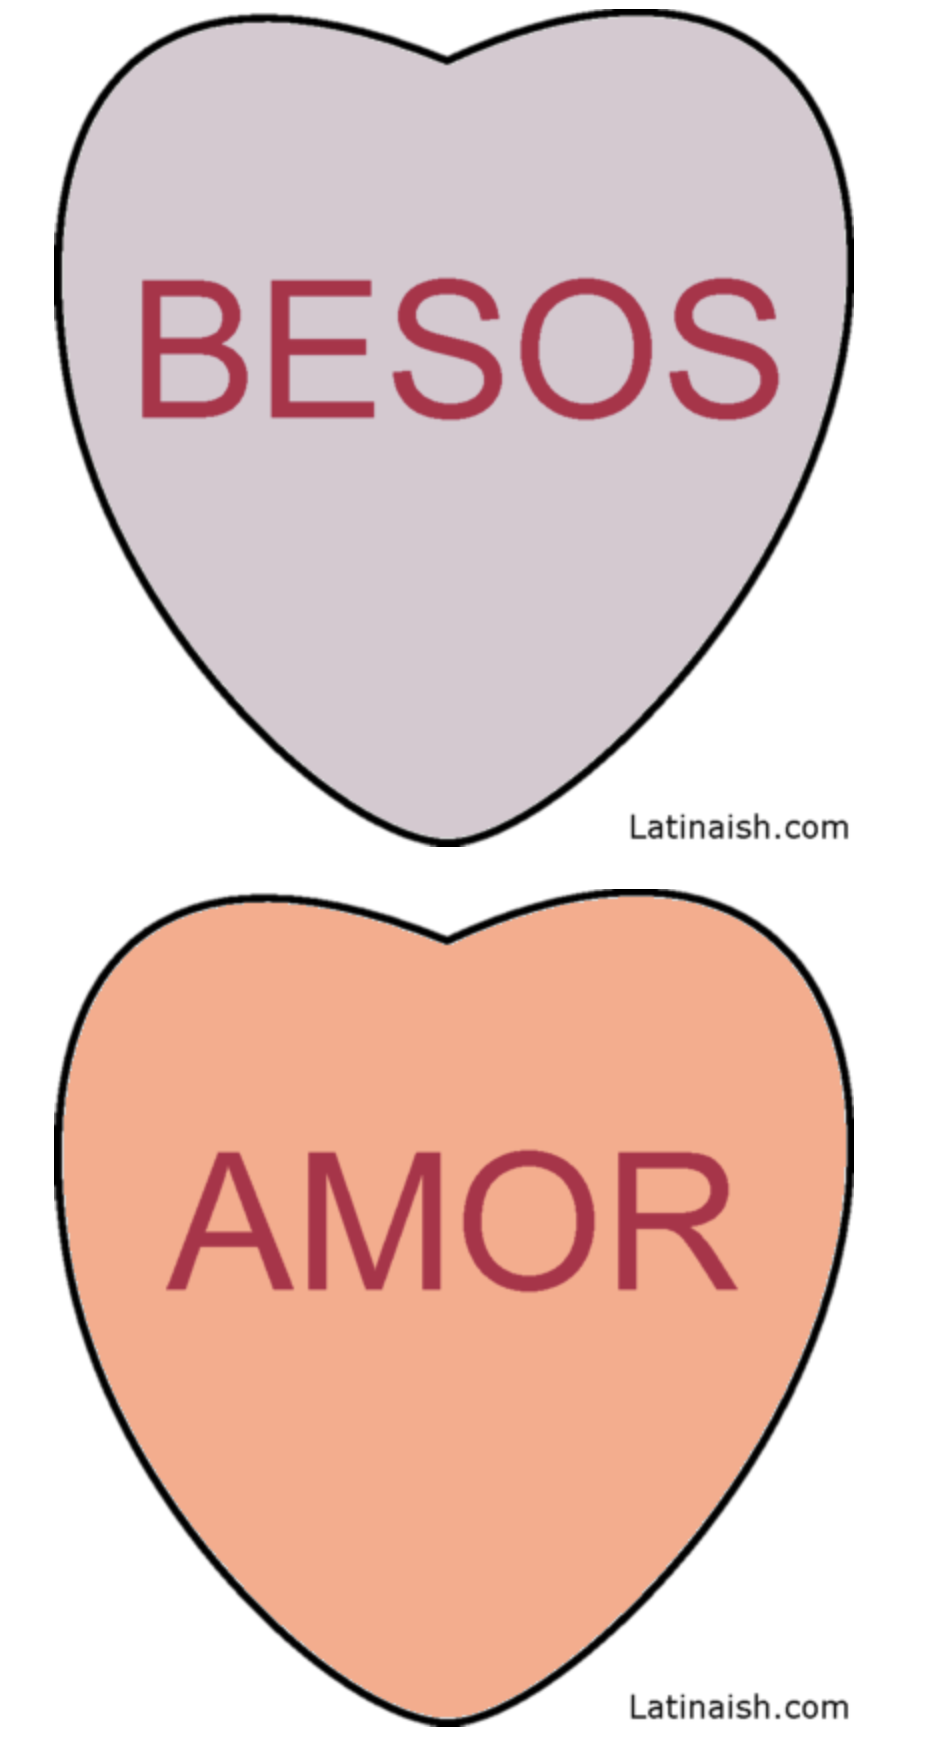 Valentine's Day conversation hearts in Spanish - livingmividaloca.com